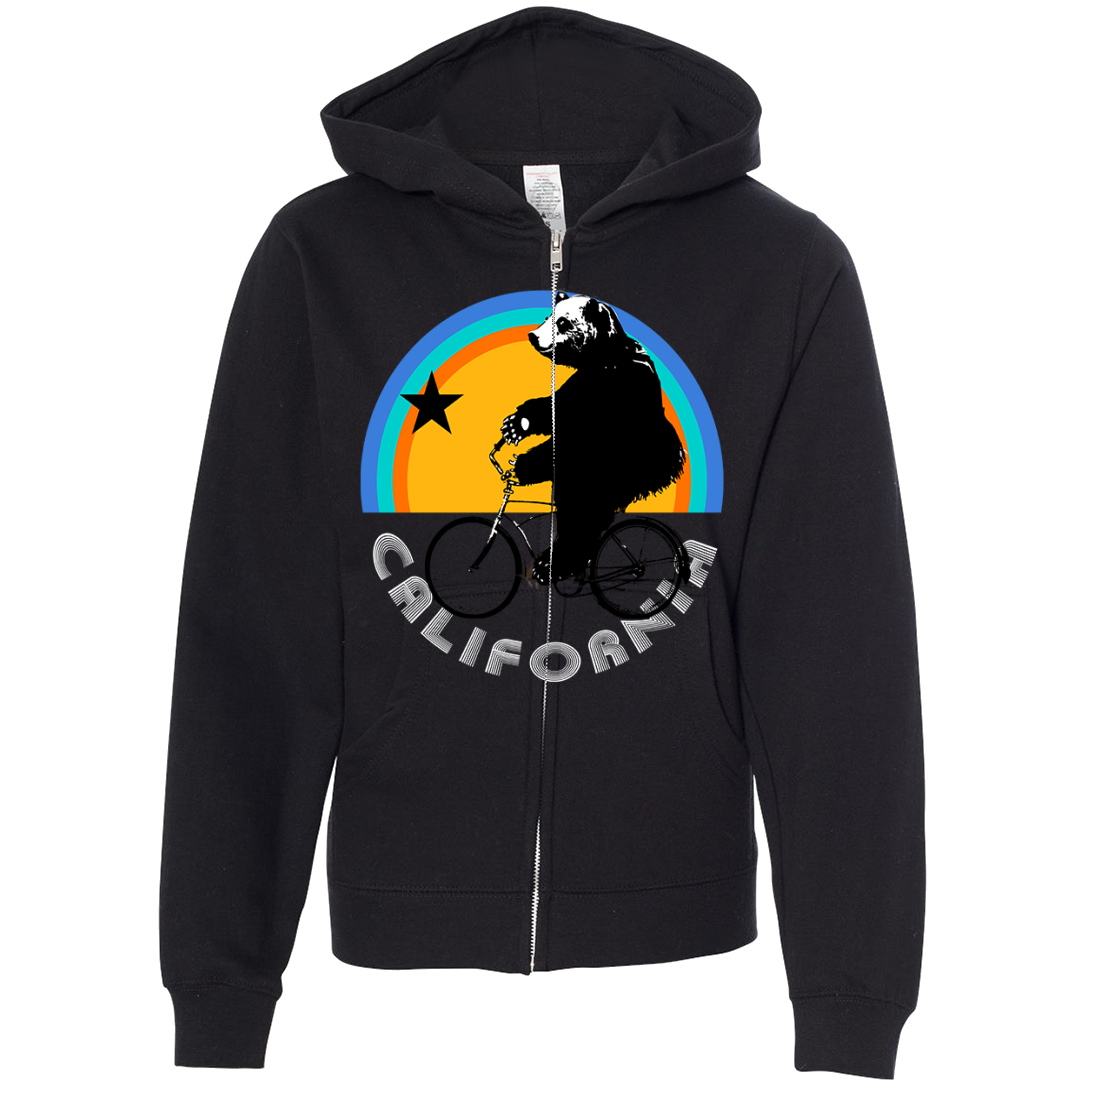 California Bear On Bike Premium Youth Zip-Up Hoodie